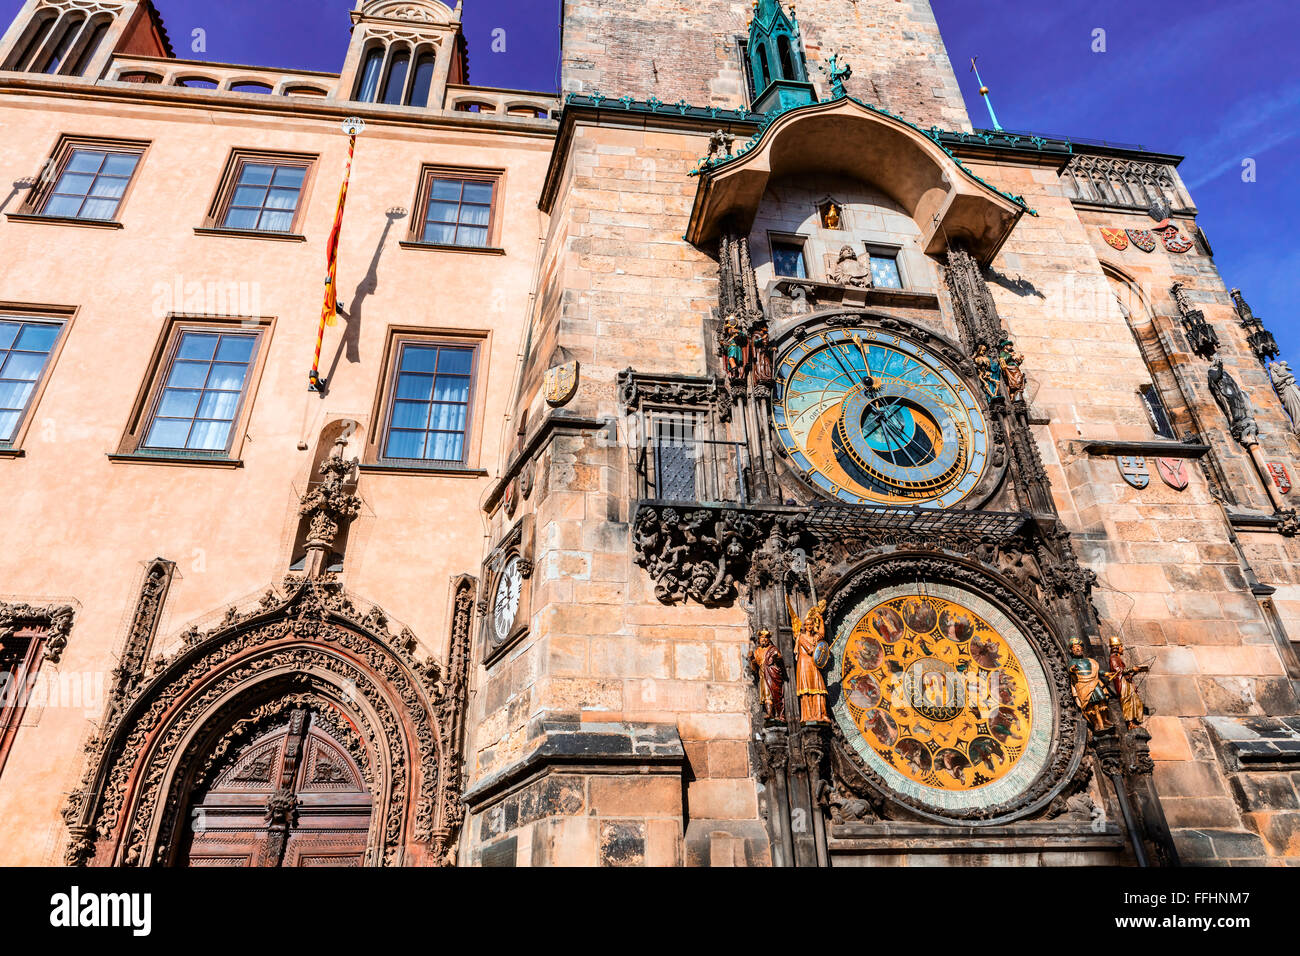 Astronomical Clock on the Old Town Square. - Stock Image